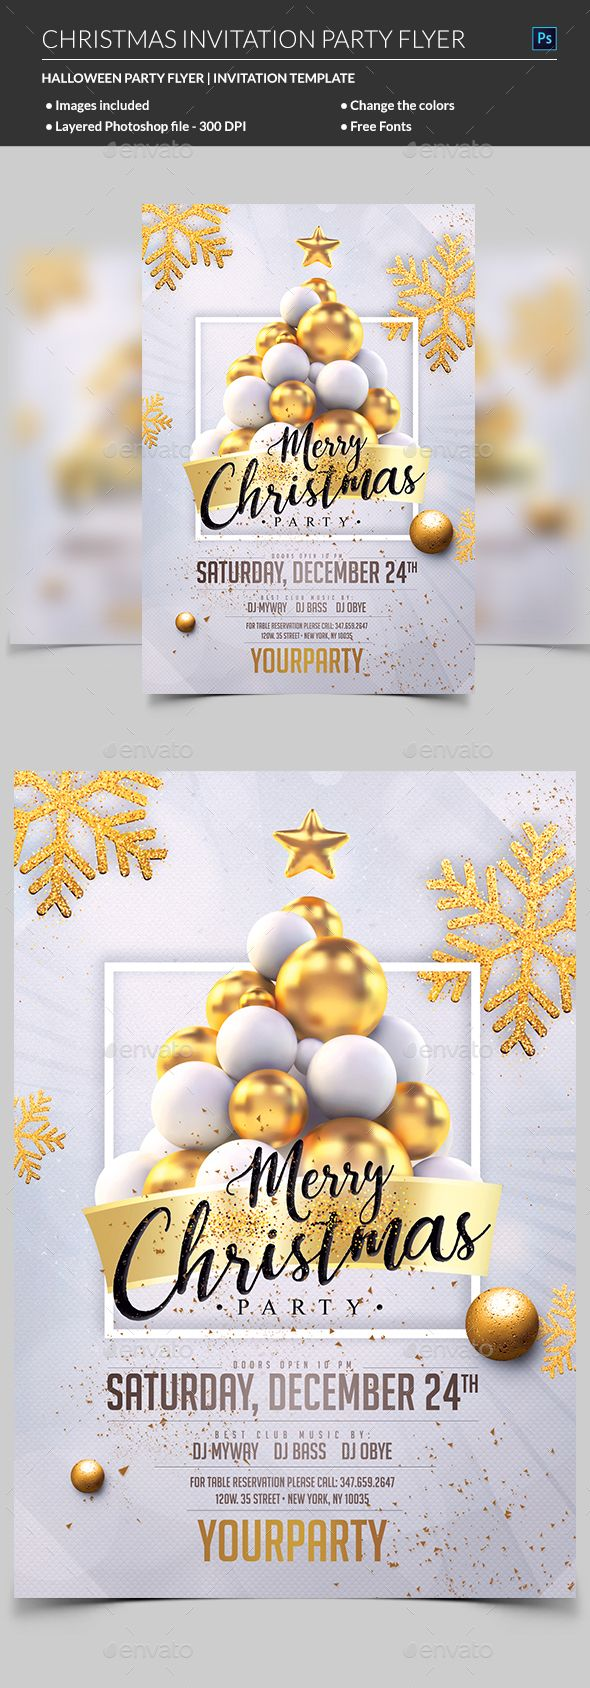 Christmas Party Invitation 371 best Flyers images